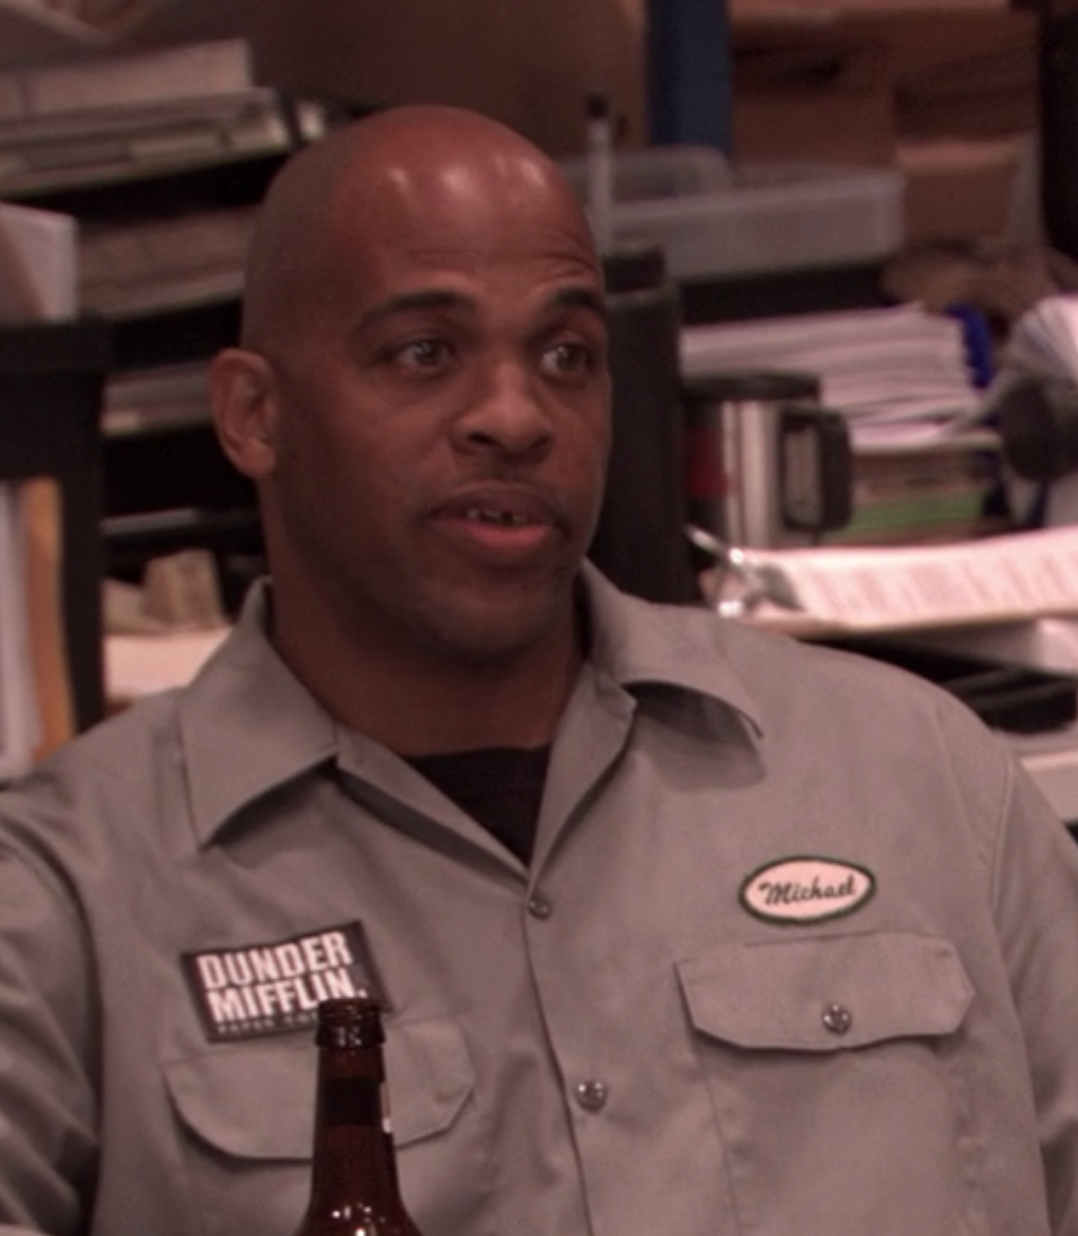 Michael (Warehouse Worker)